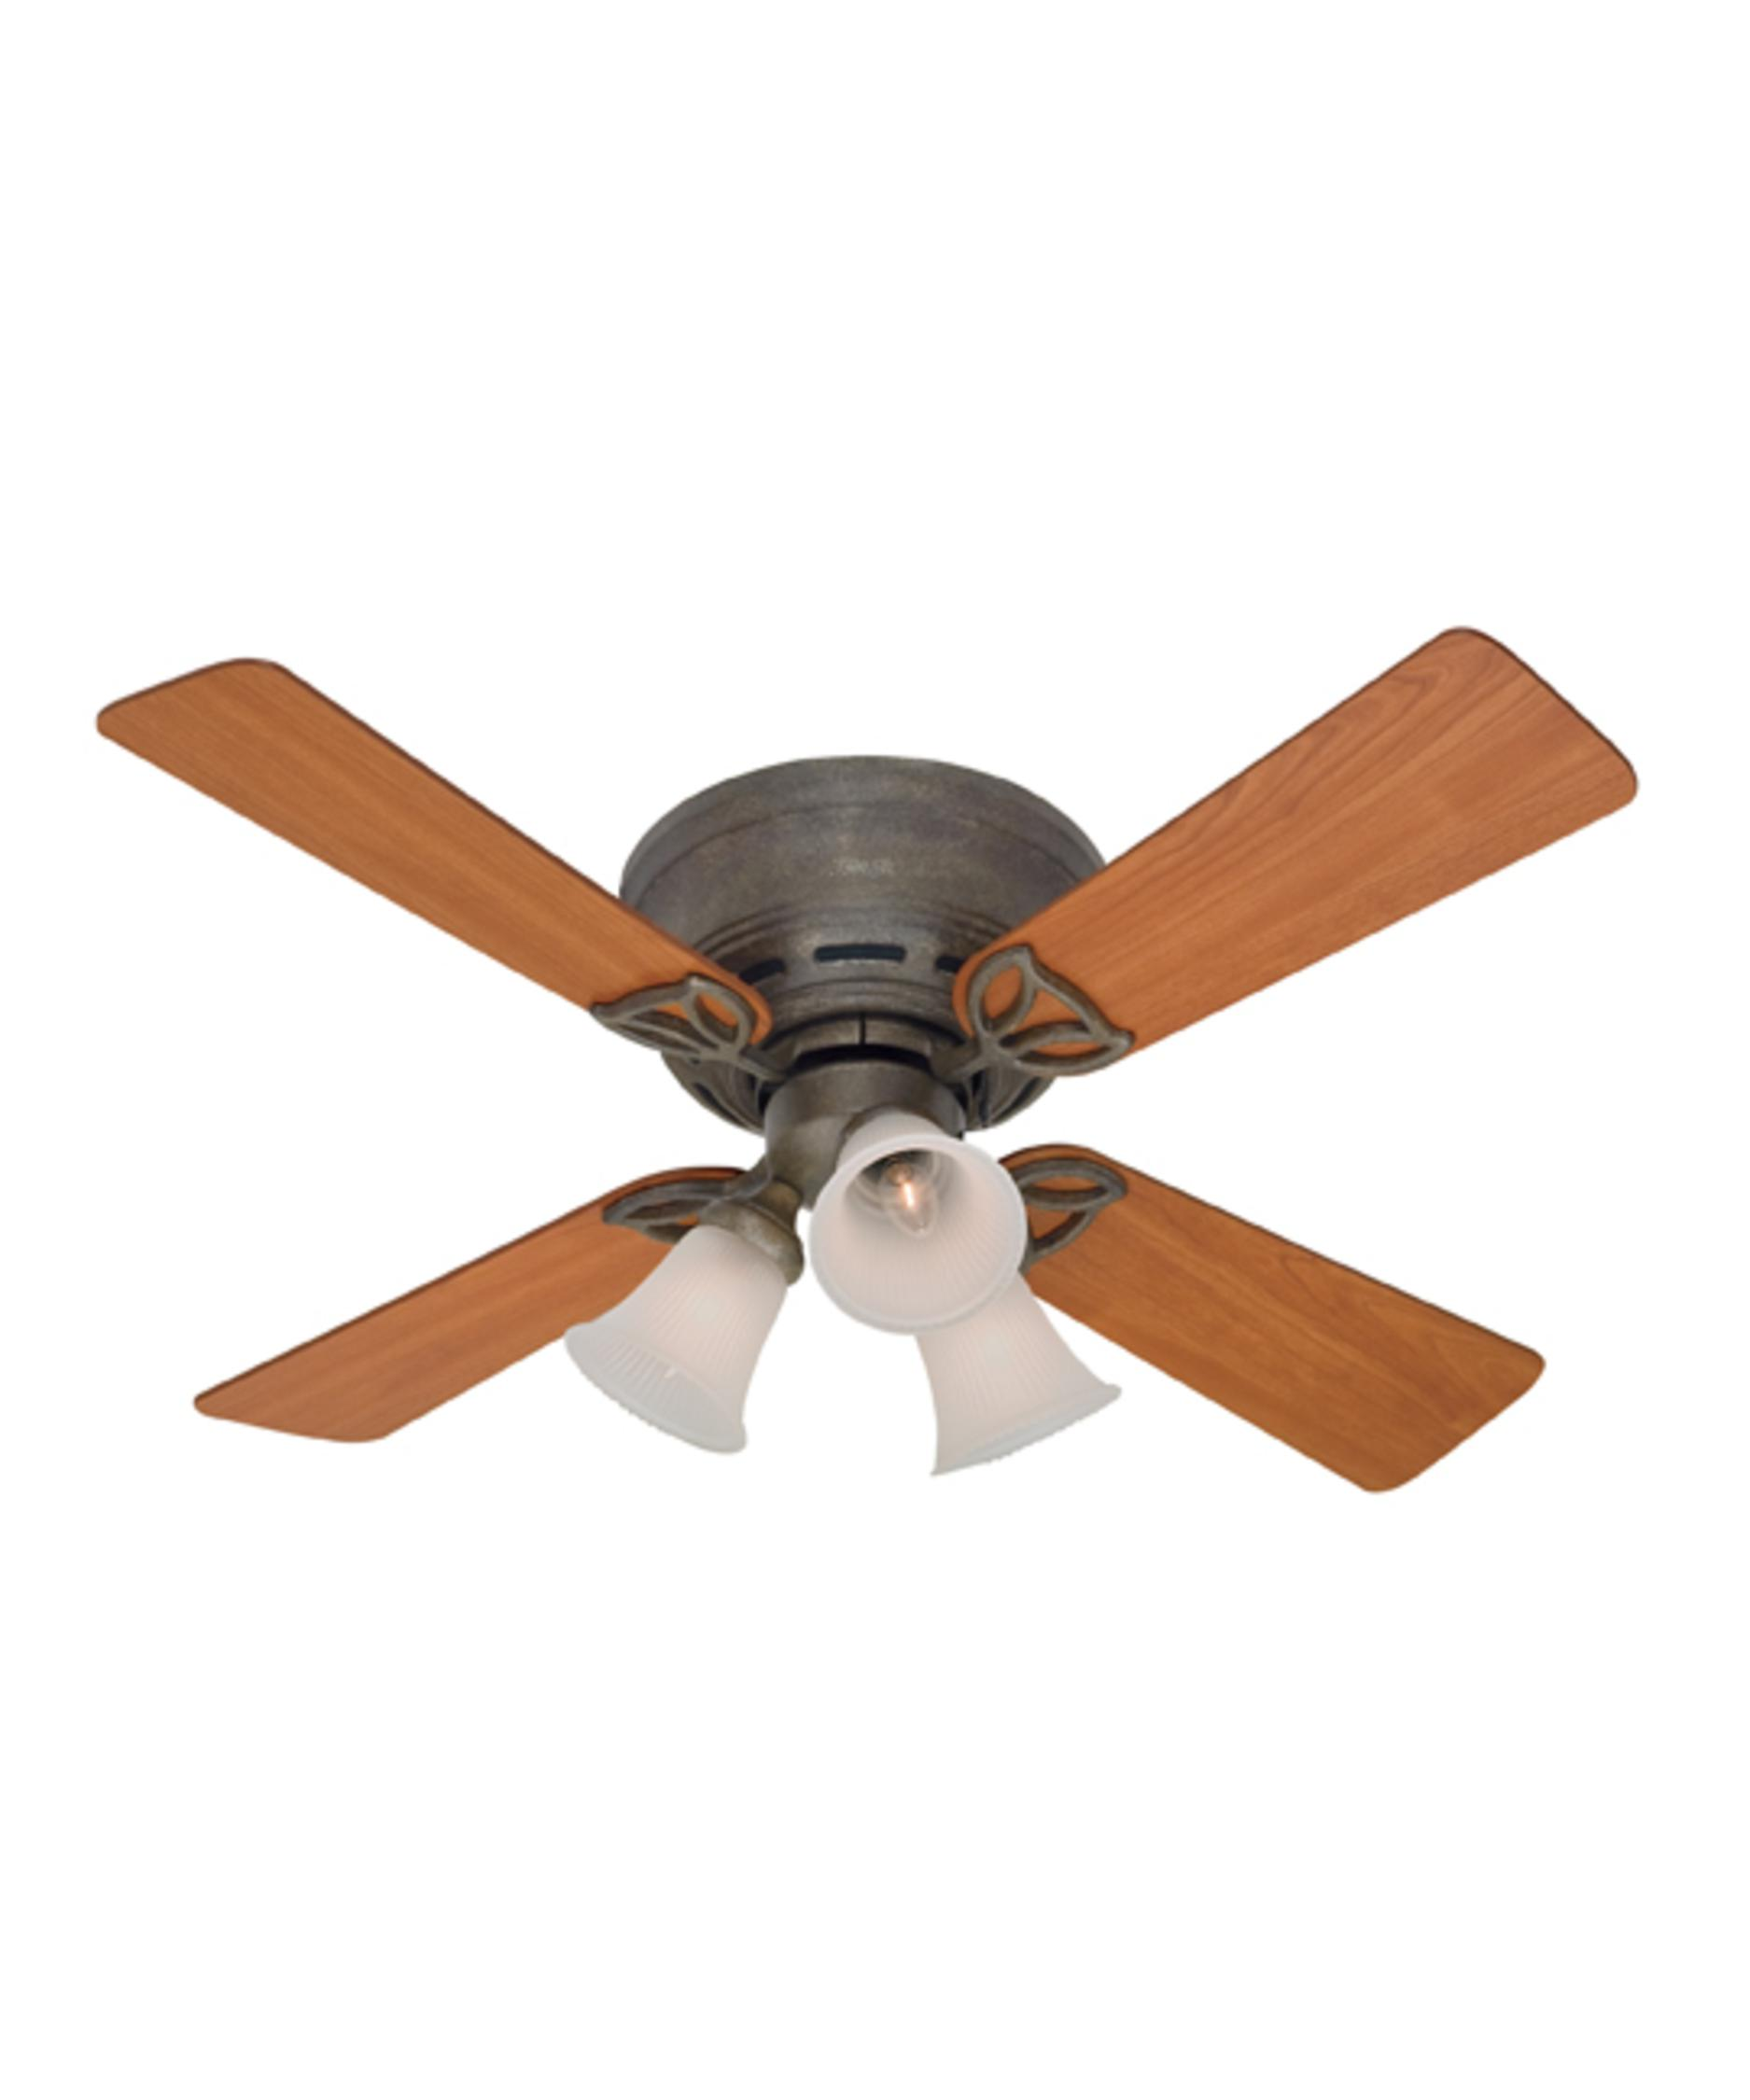 Ceiling Fan Light Kit Ceiling Fans With Lights Emerson Ceiling